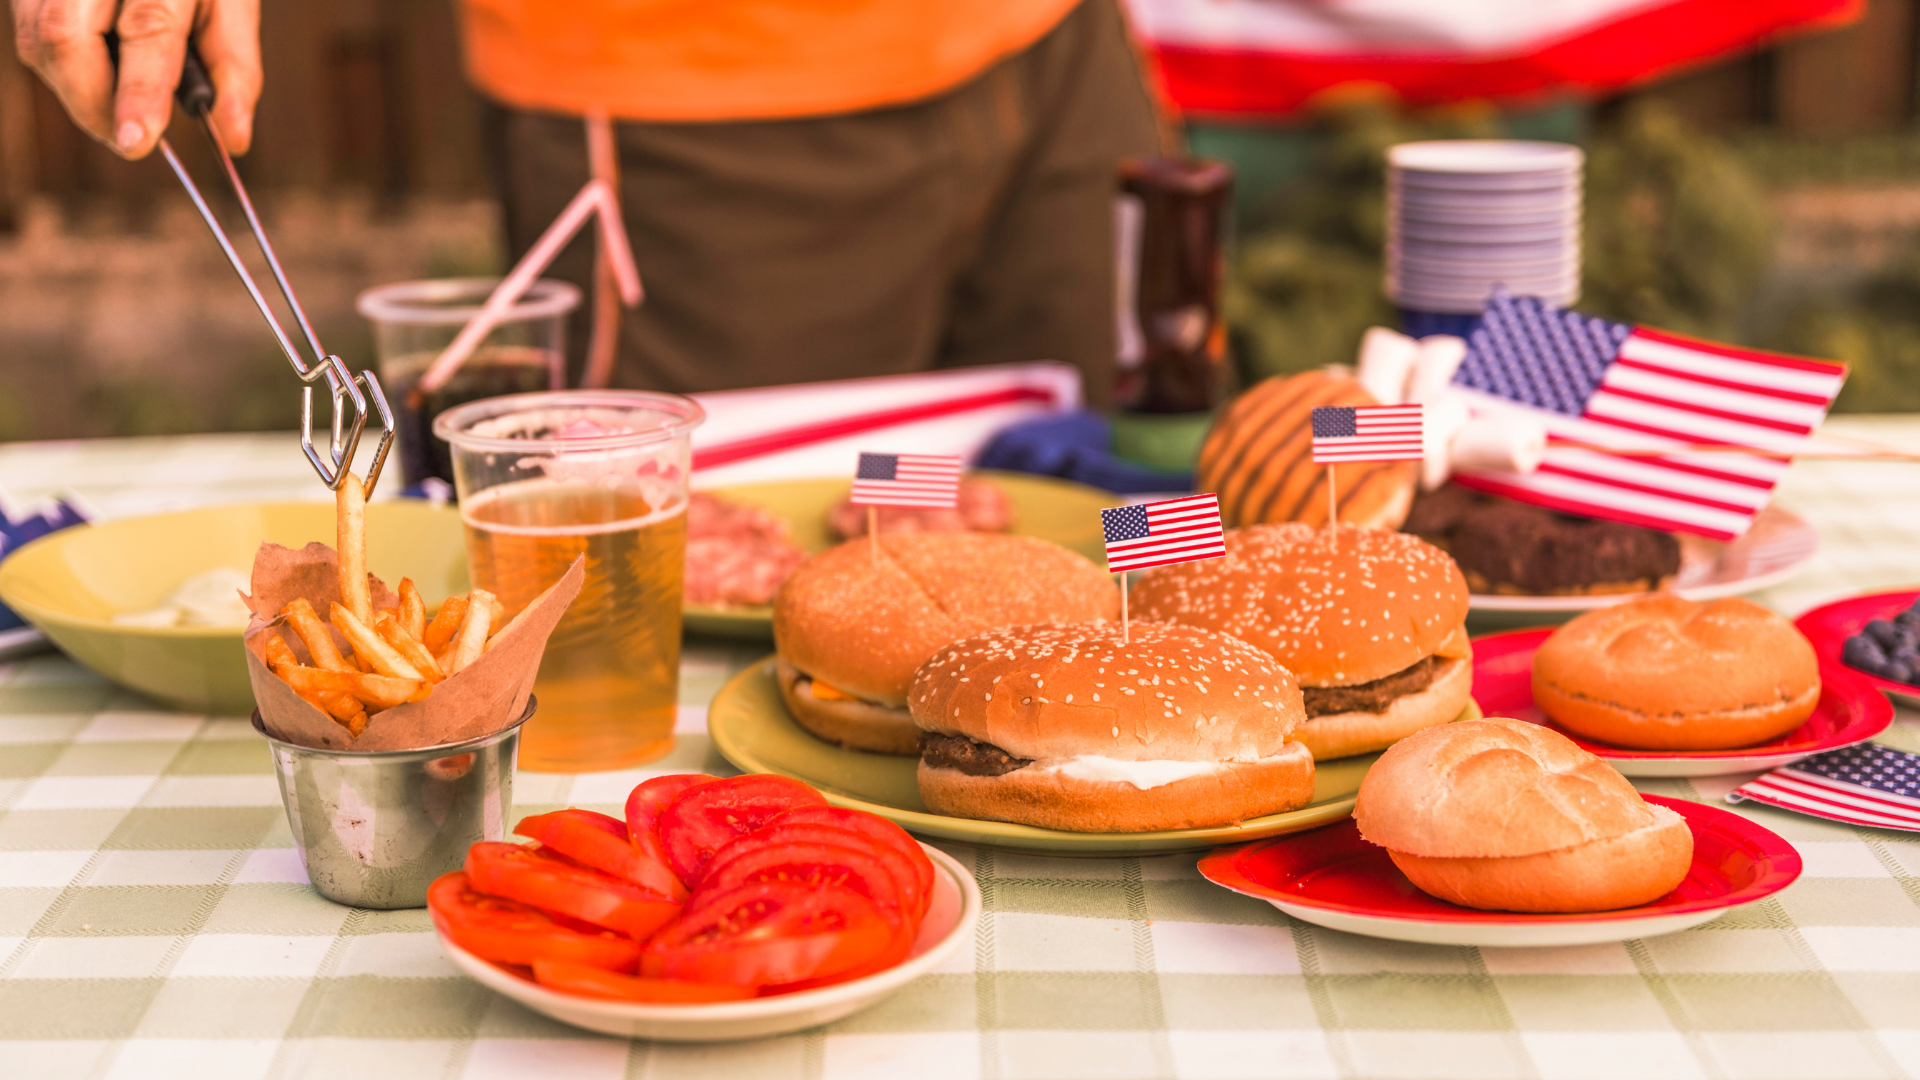 Last Minute Recipes for 4th of July